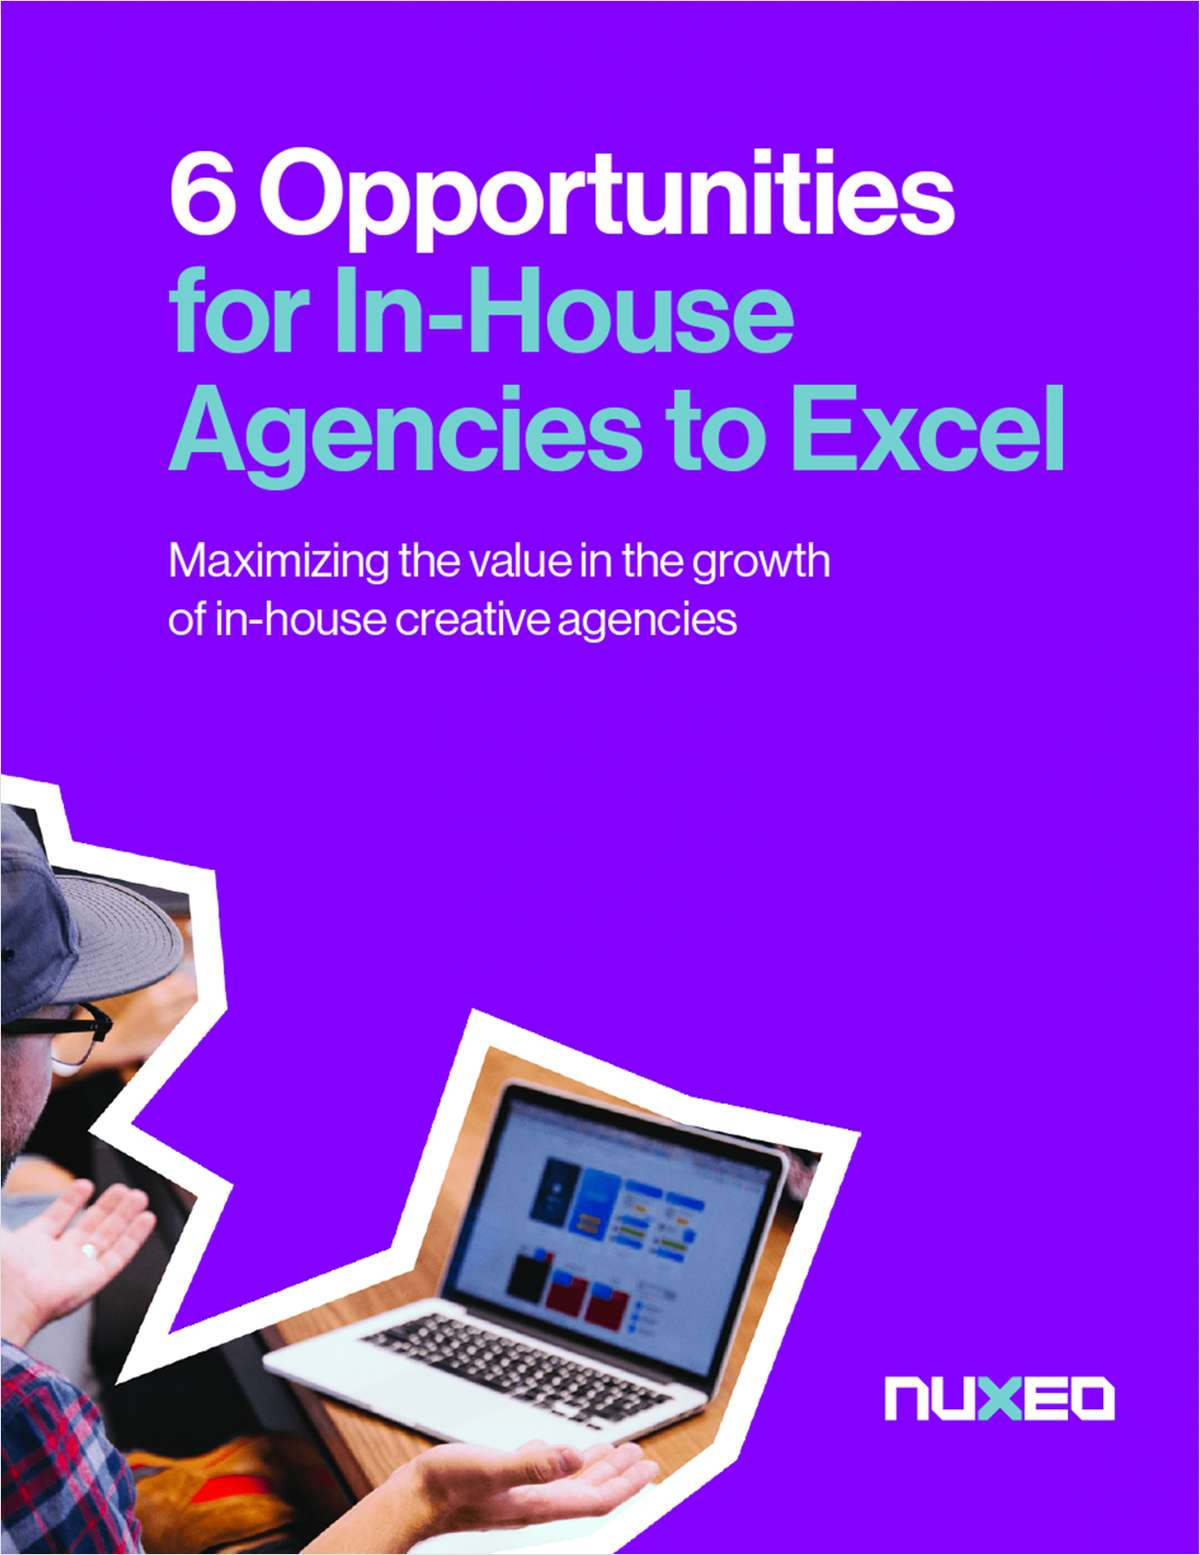 6 Opportunities for In-House Agencies to Excel